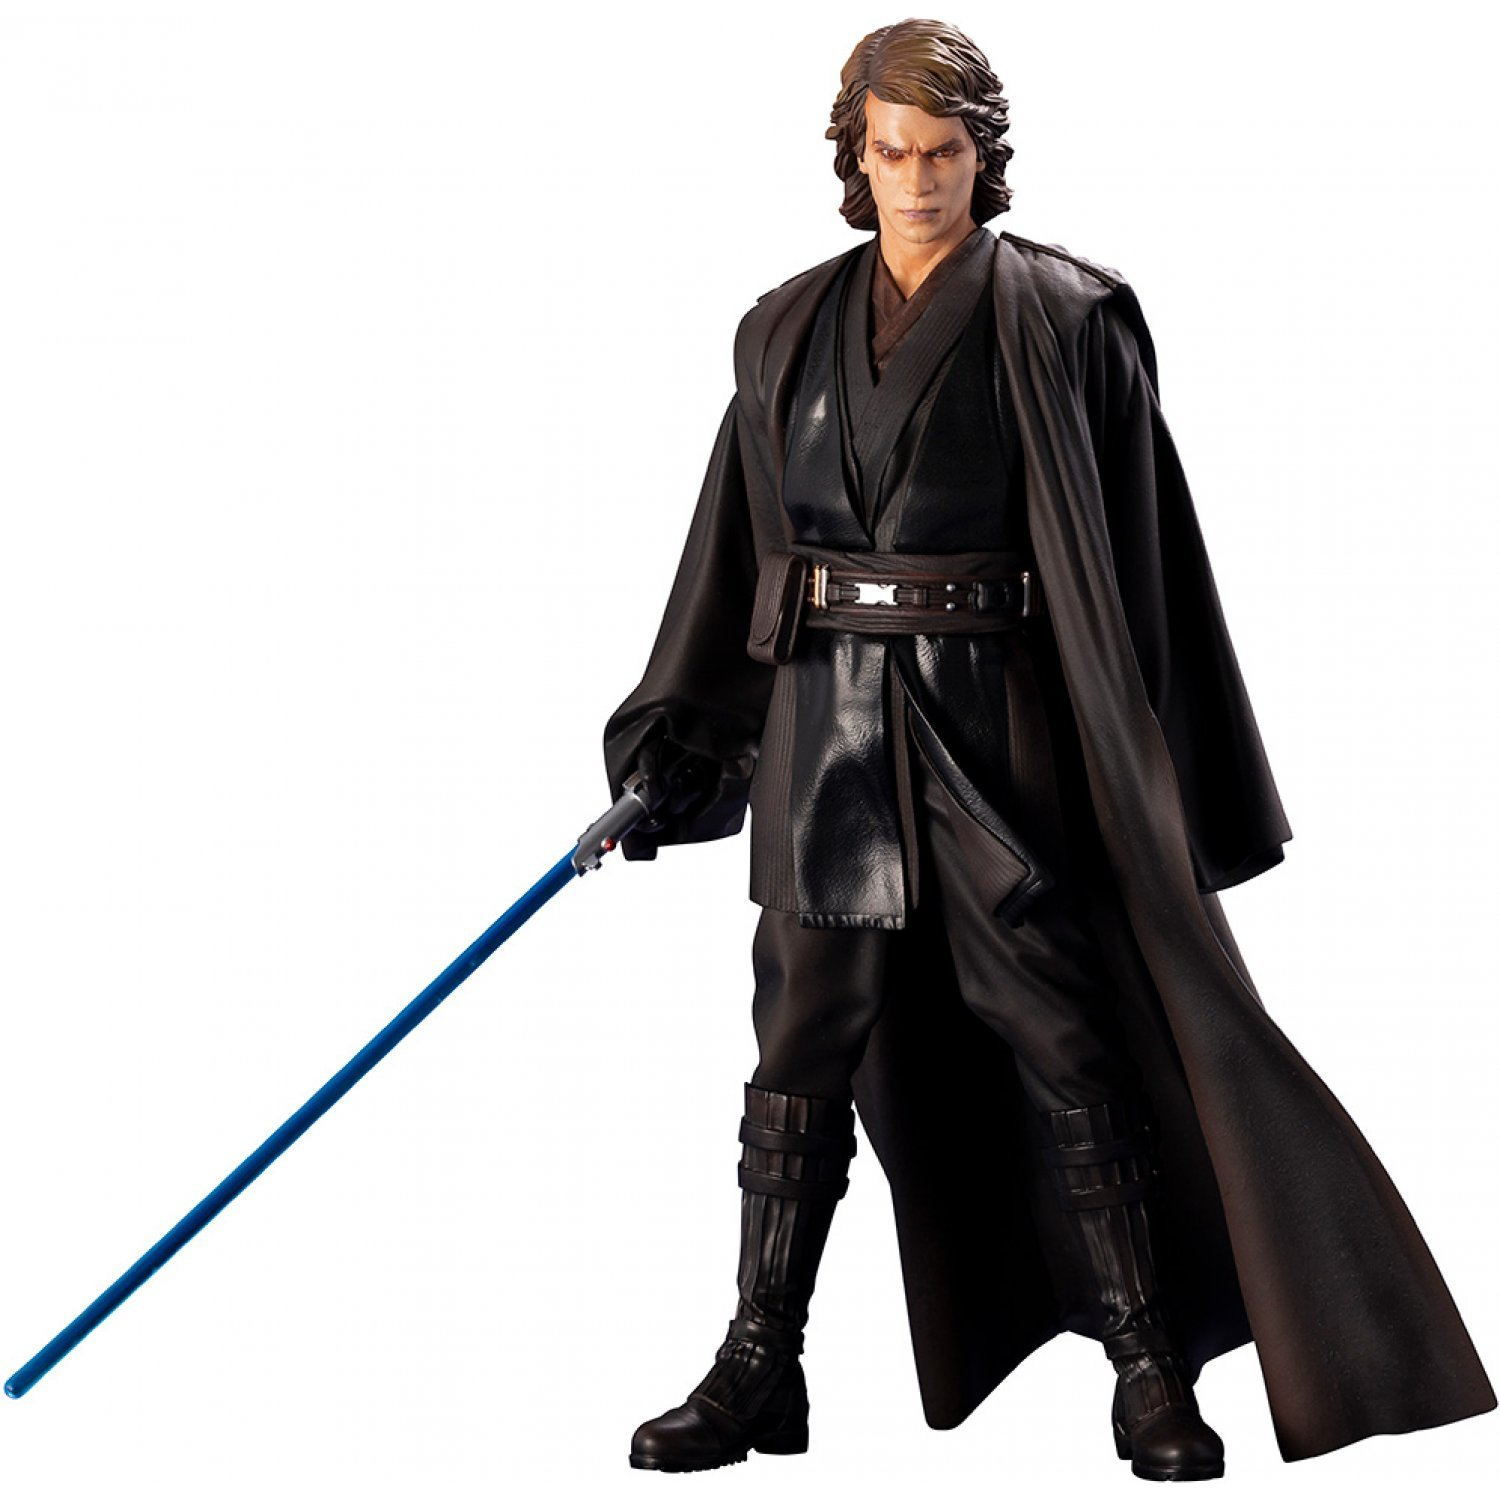 Artfx Star Wars Revenge Of The Sith 1 10 Scale Pre Painted Figure Anakin Skywalker Revenge Of The Sith Ver